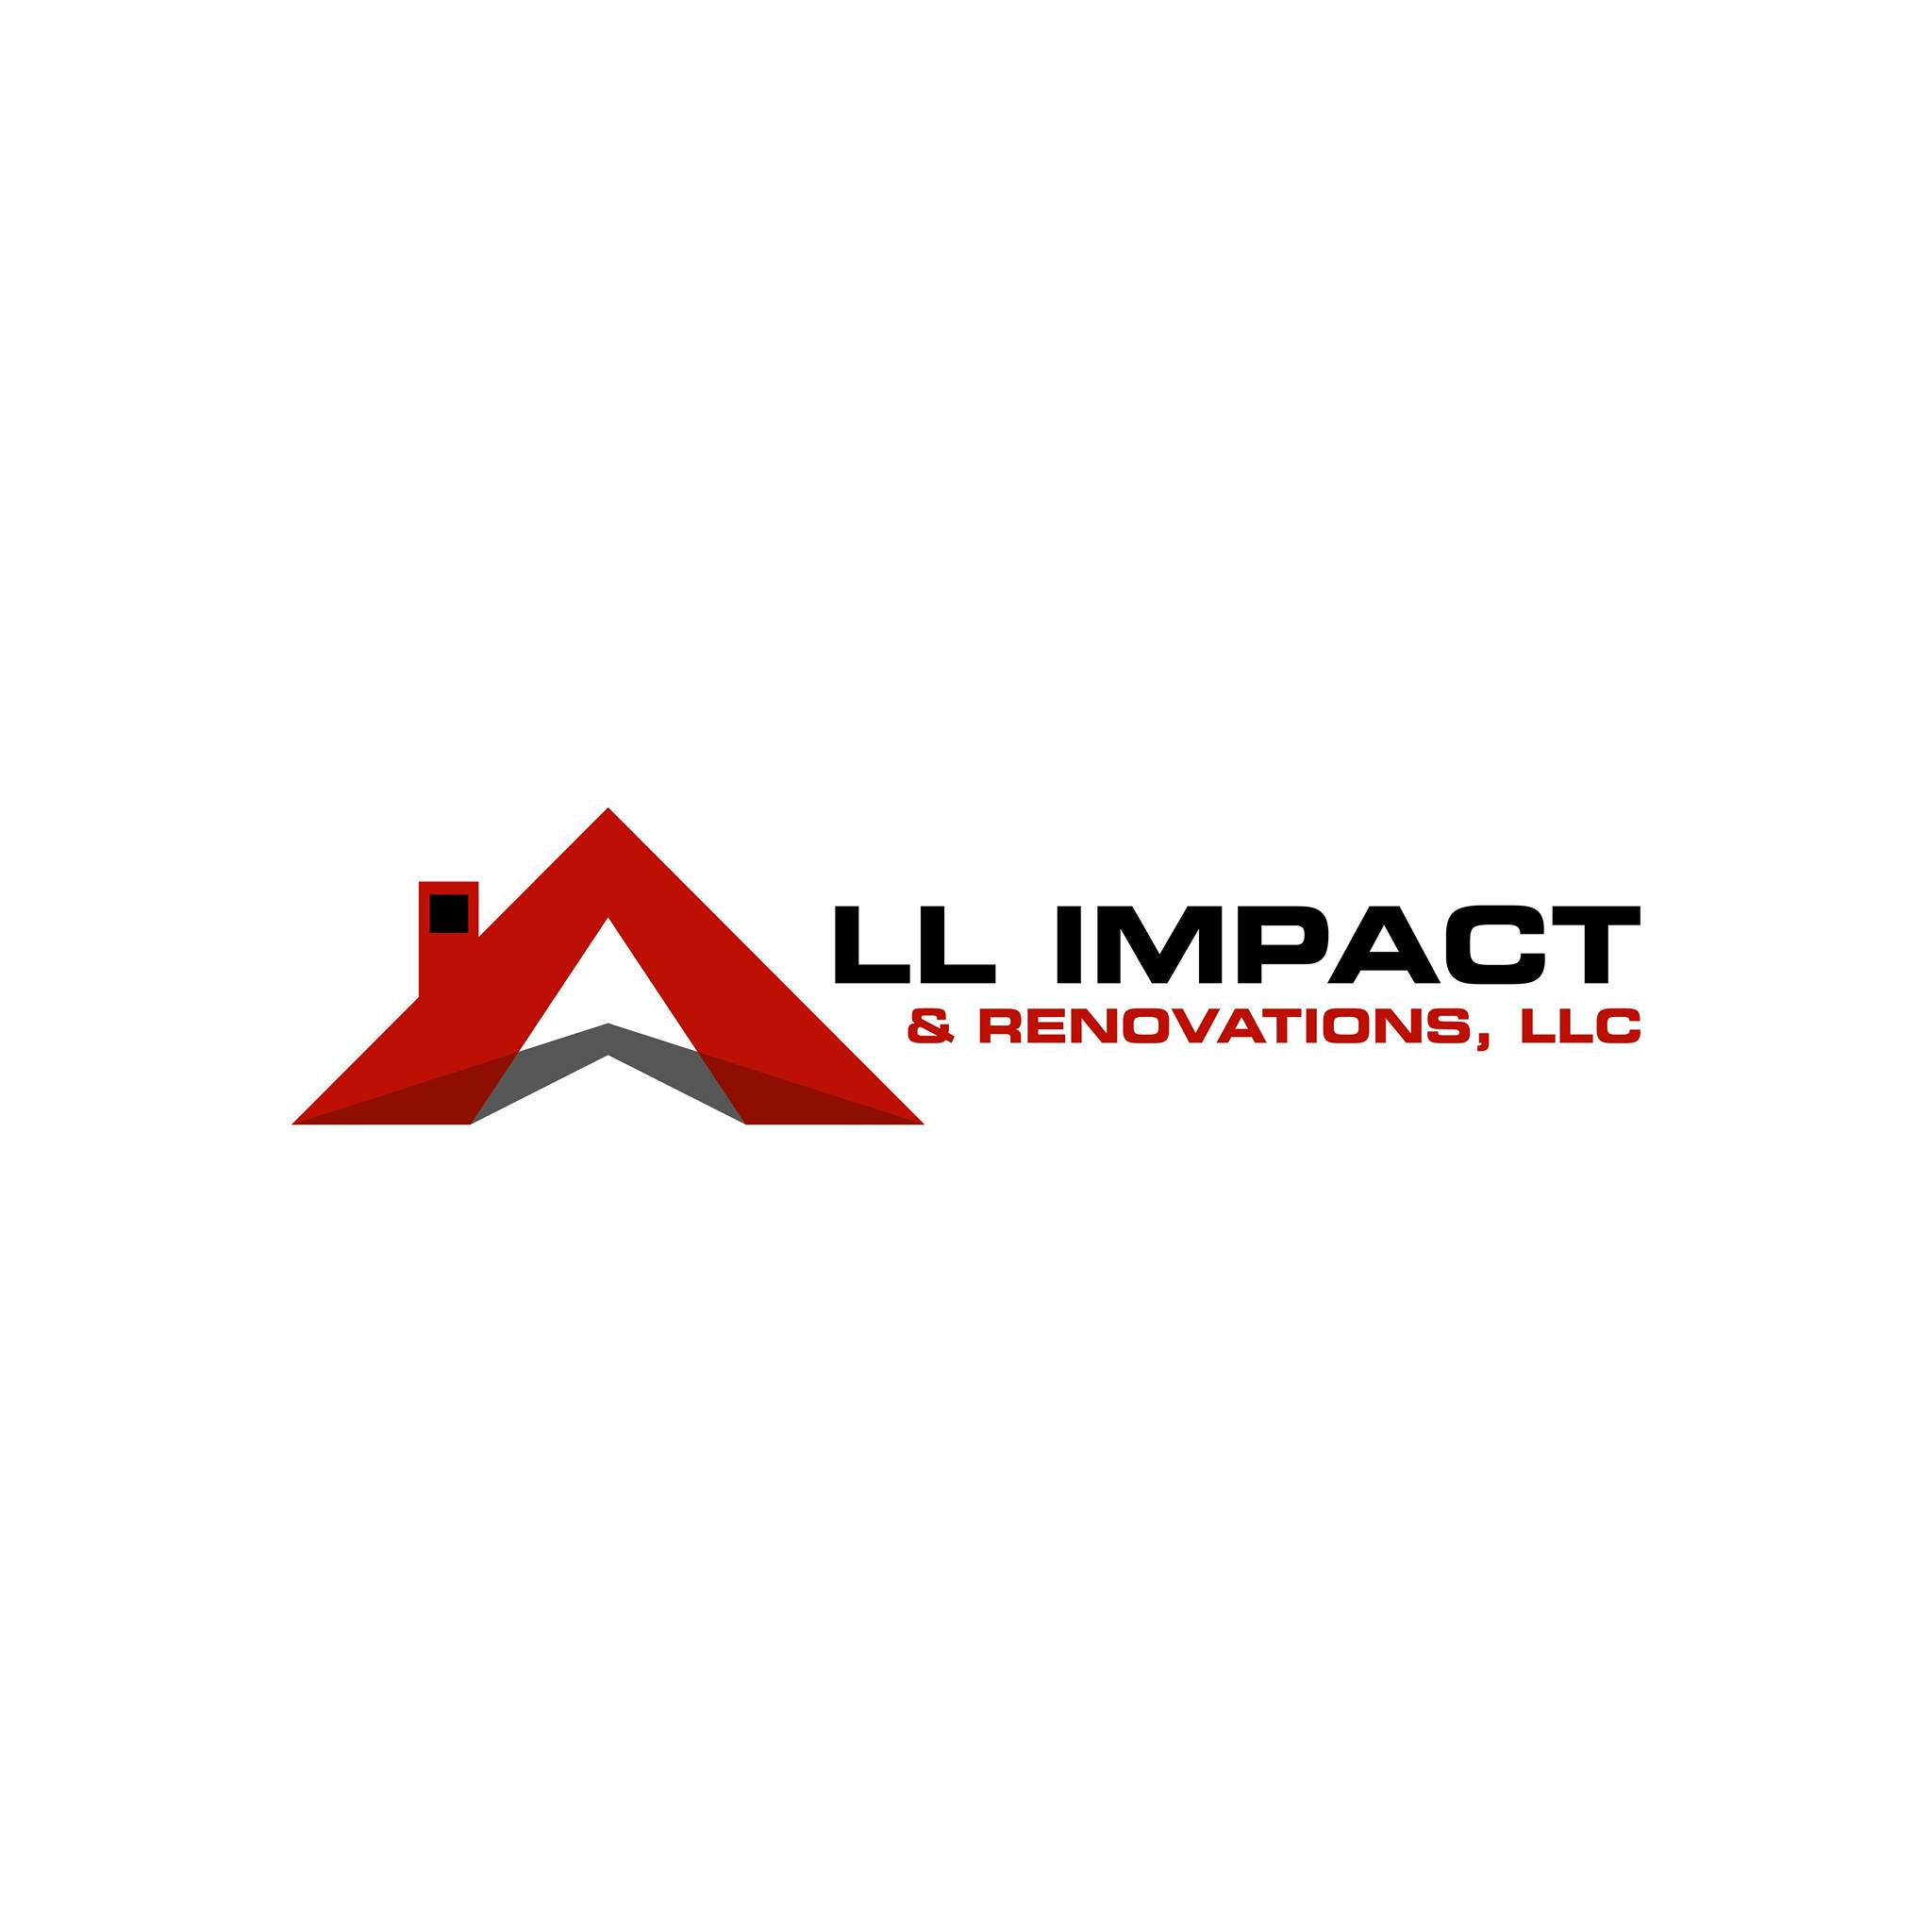 All Impact & Renovations, LLC Sells and Installs Impact Windows and Doors in Fort Lauderdale